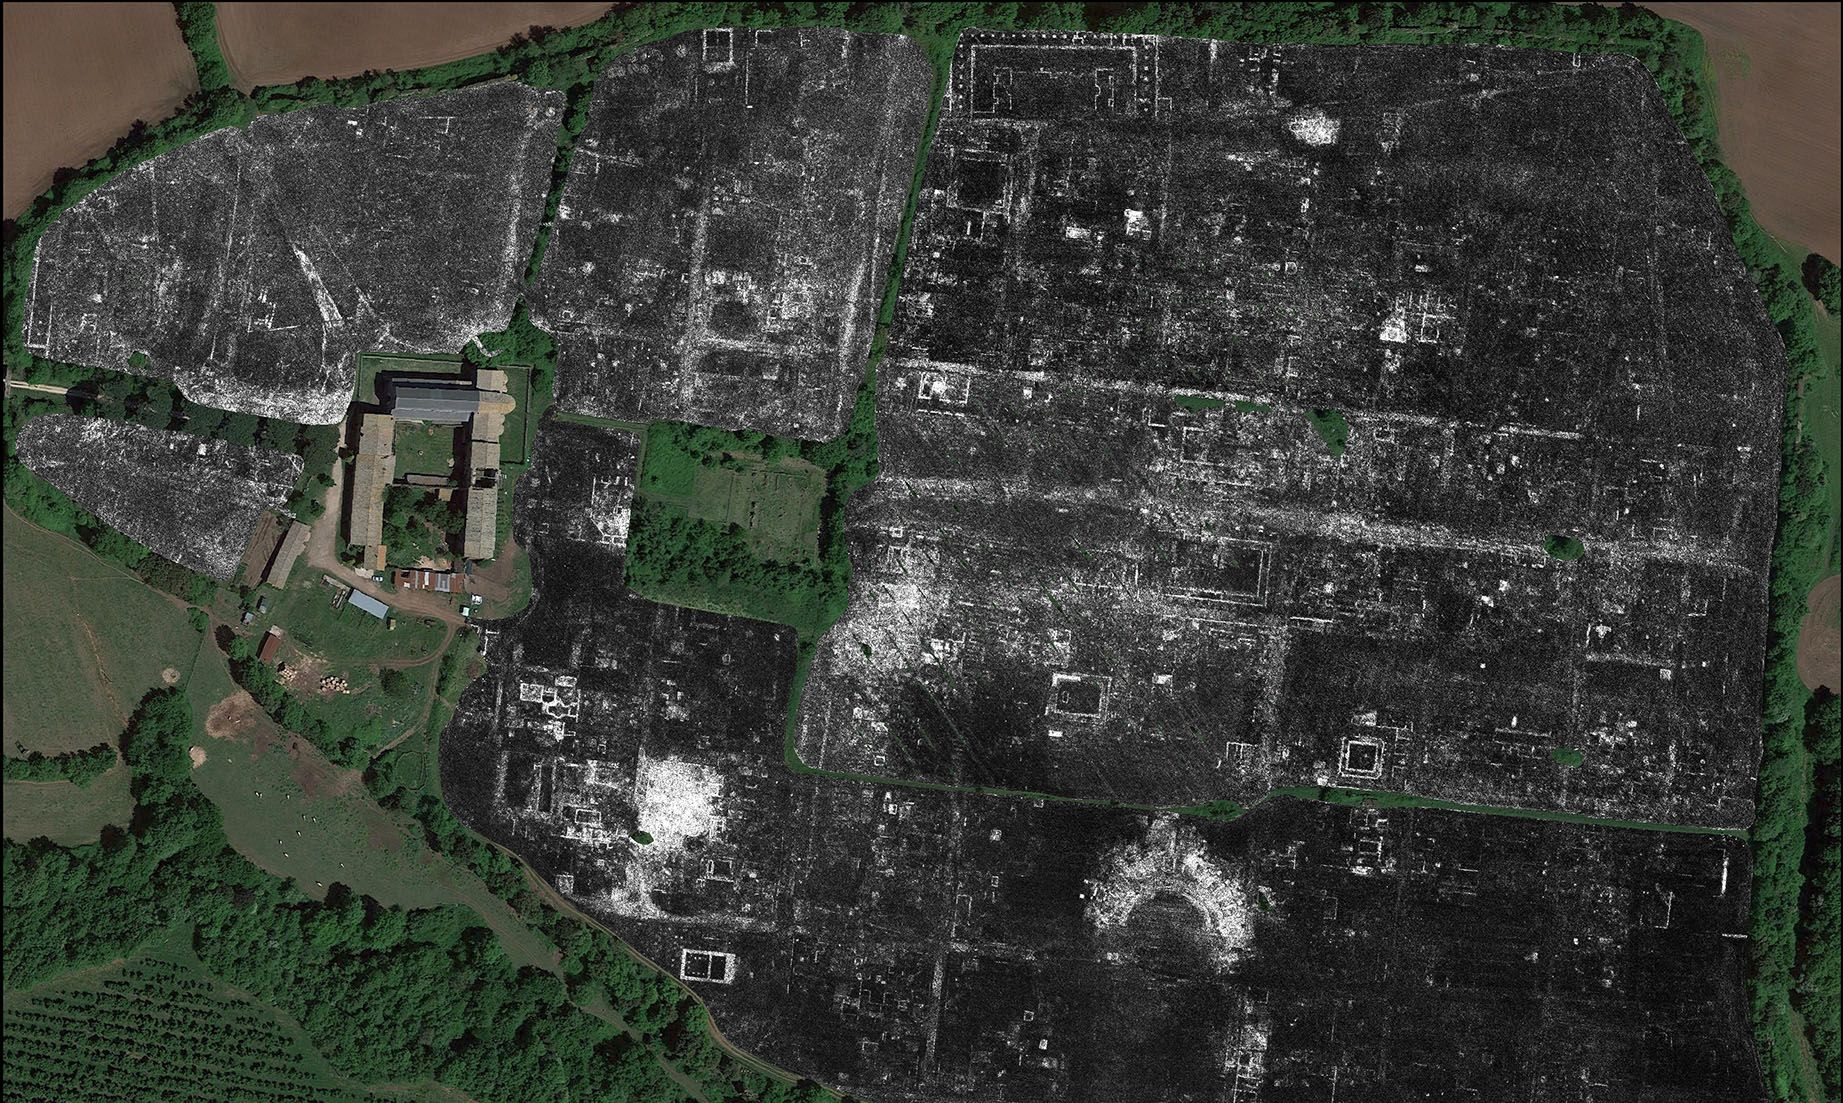 A slice of ground penetrating radar data from Falerii Novi, revealing the outlines of the town's buildings. Image: L. Verdonck